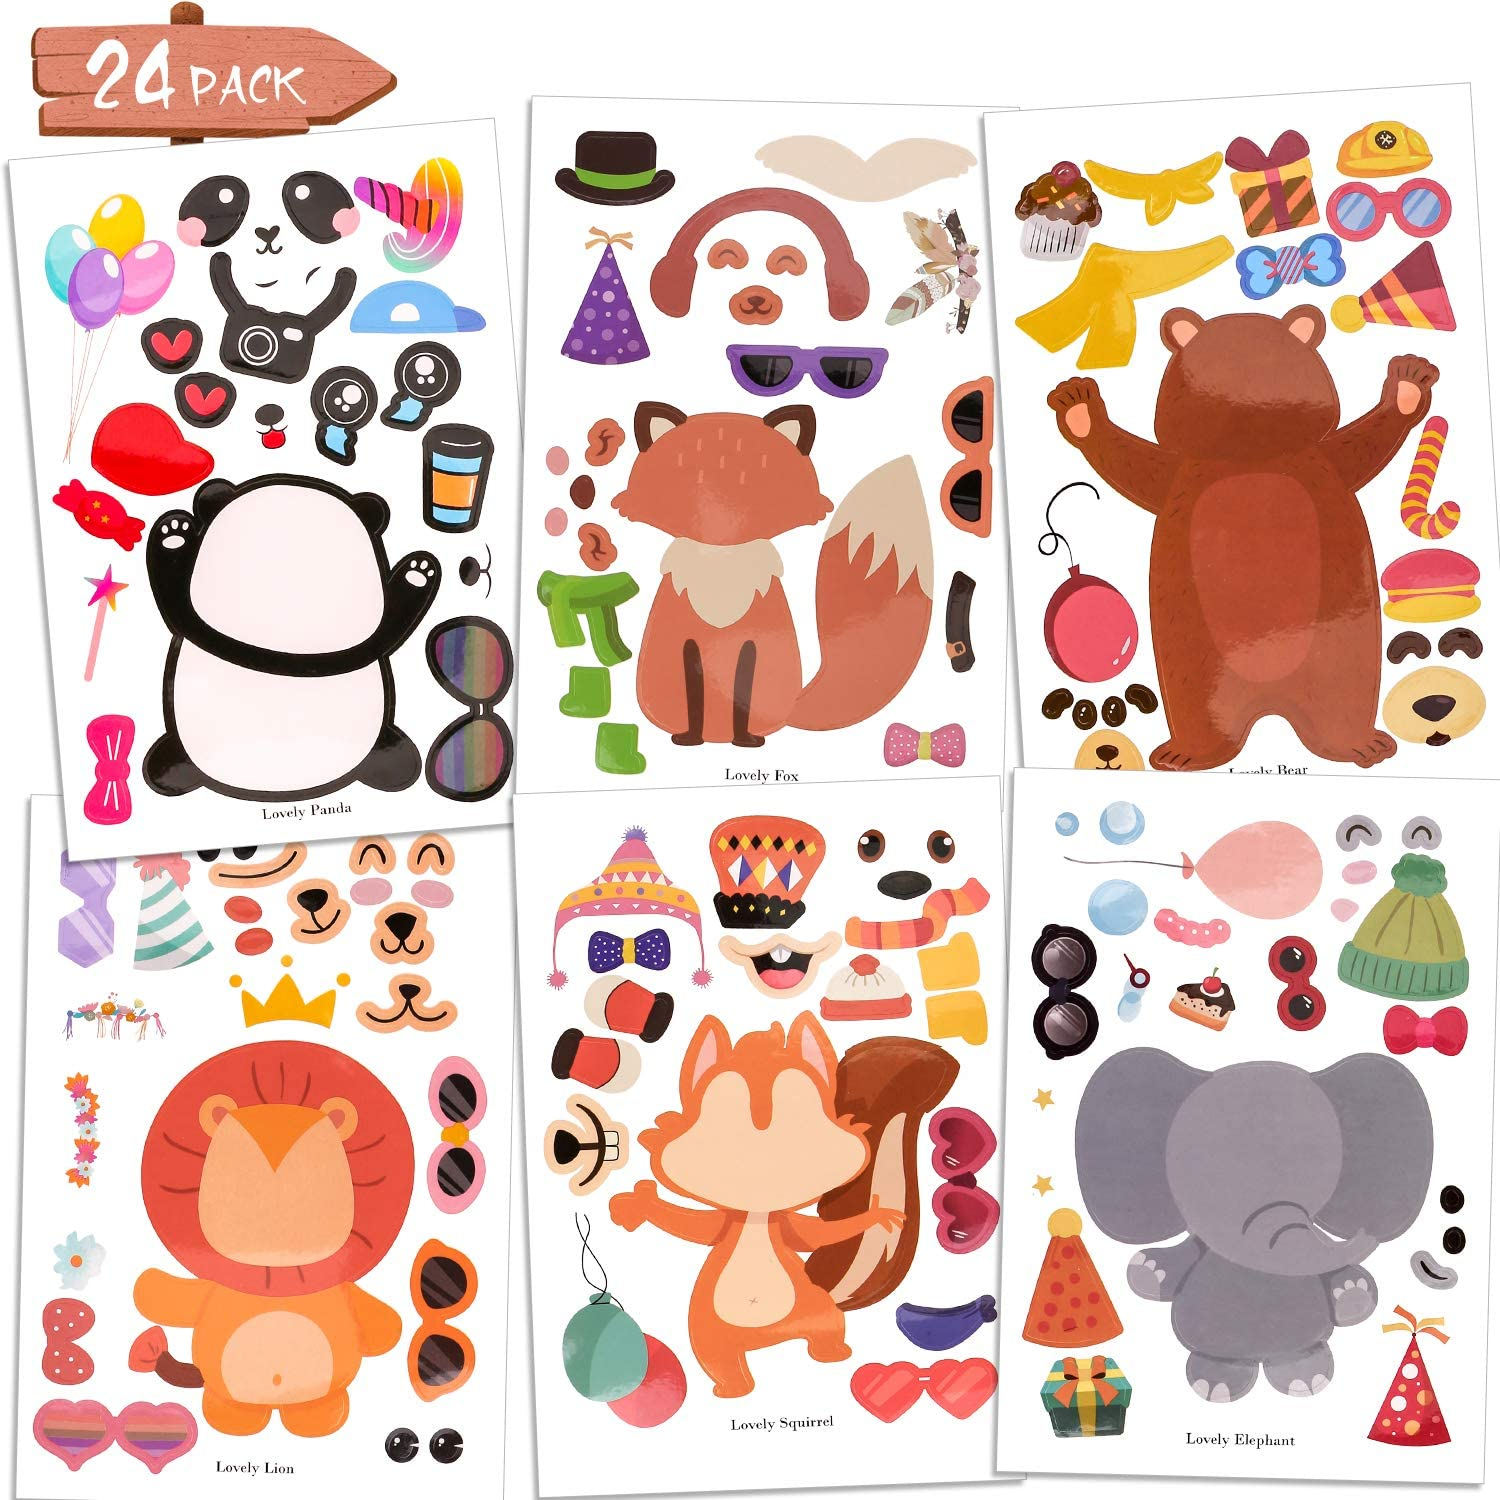 Konsait 24Pack Make-an-Animal Stickers Sheets,Make Your Own Sticker Safari Animal Sticker Zoo Birthday Party Favors Crafts Supplies